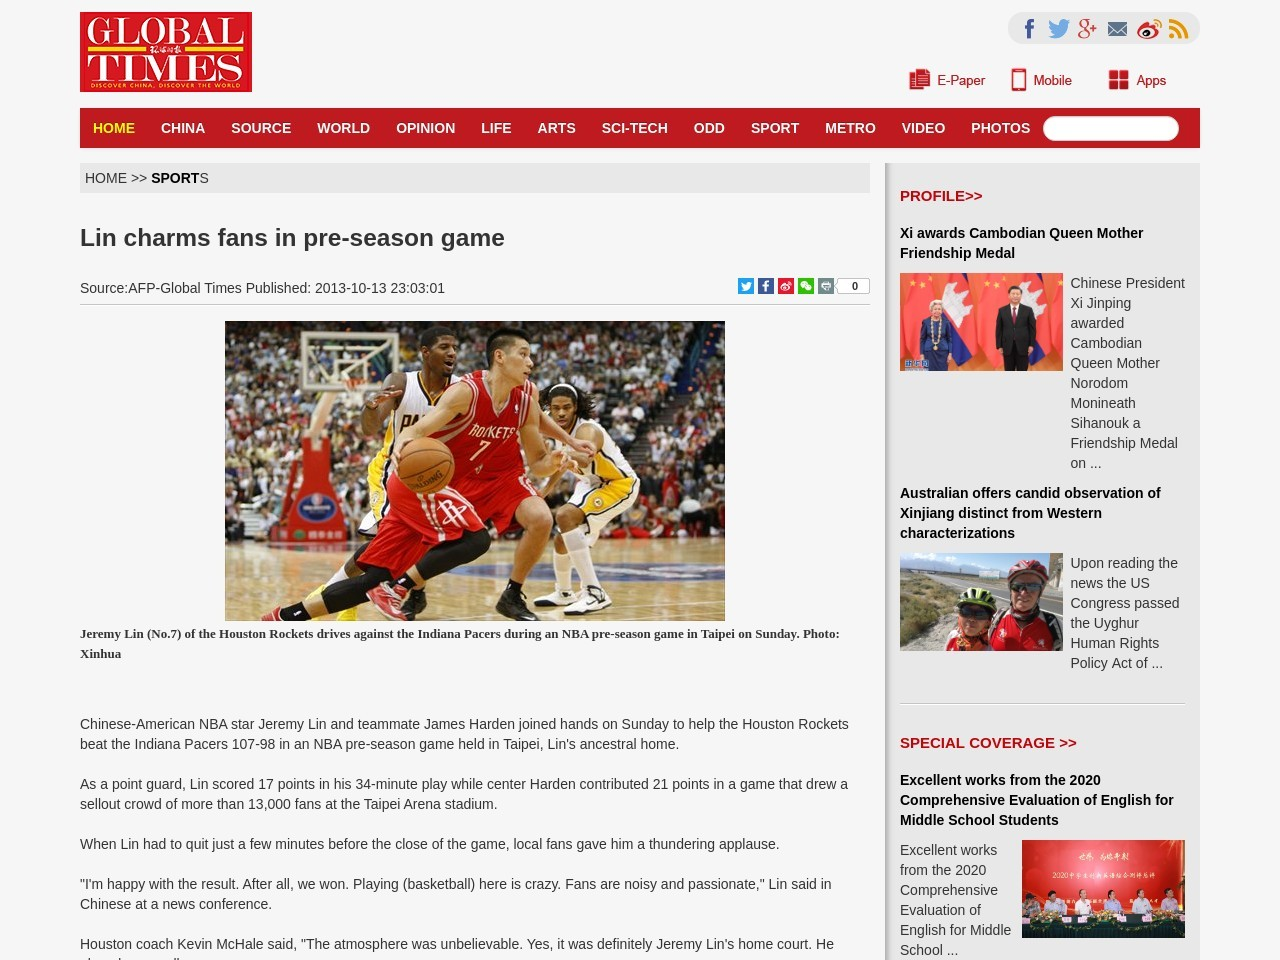 Lin charms fans in pre-season game